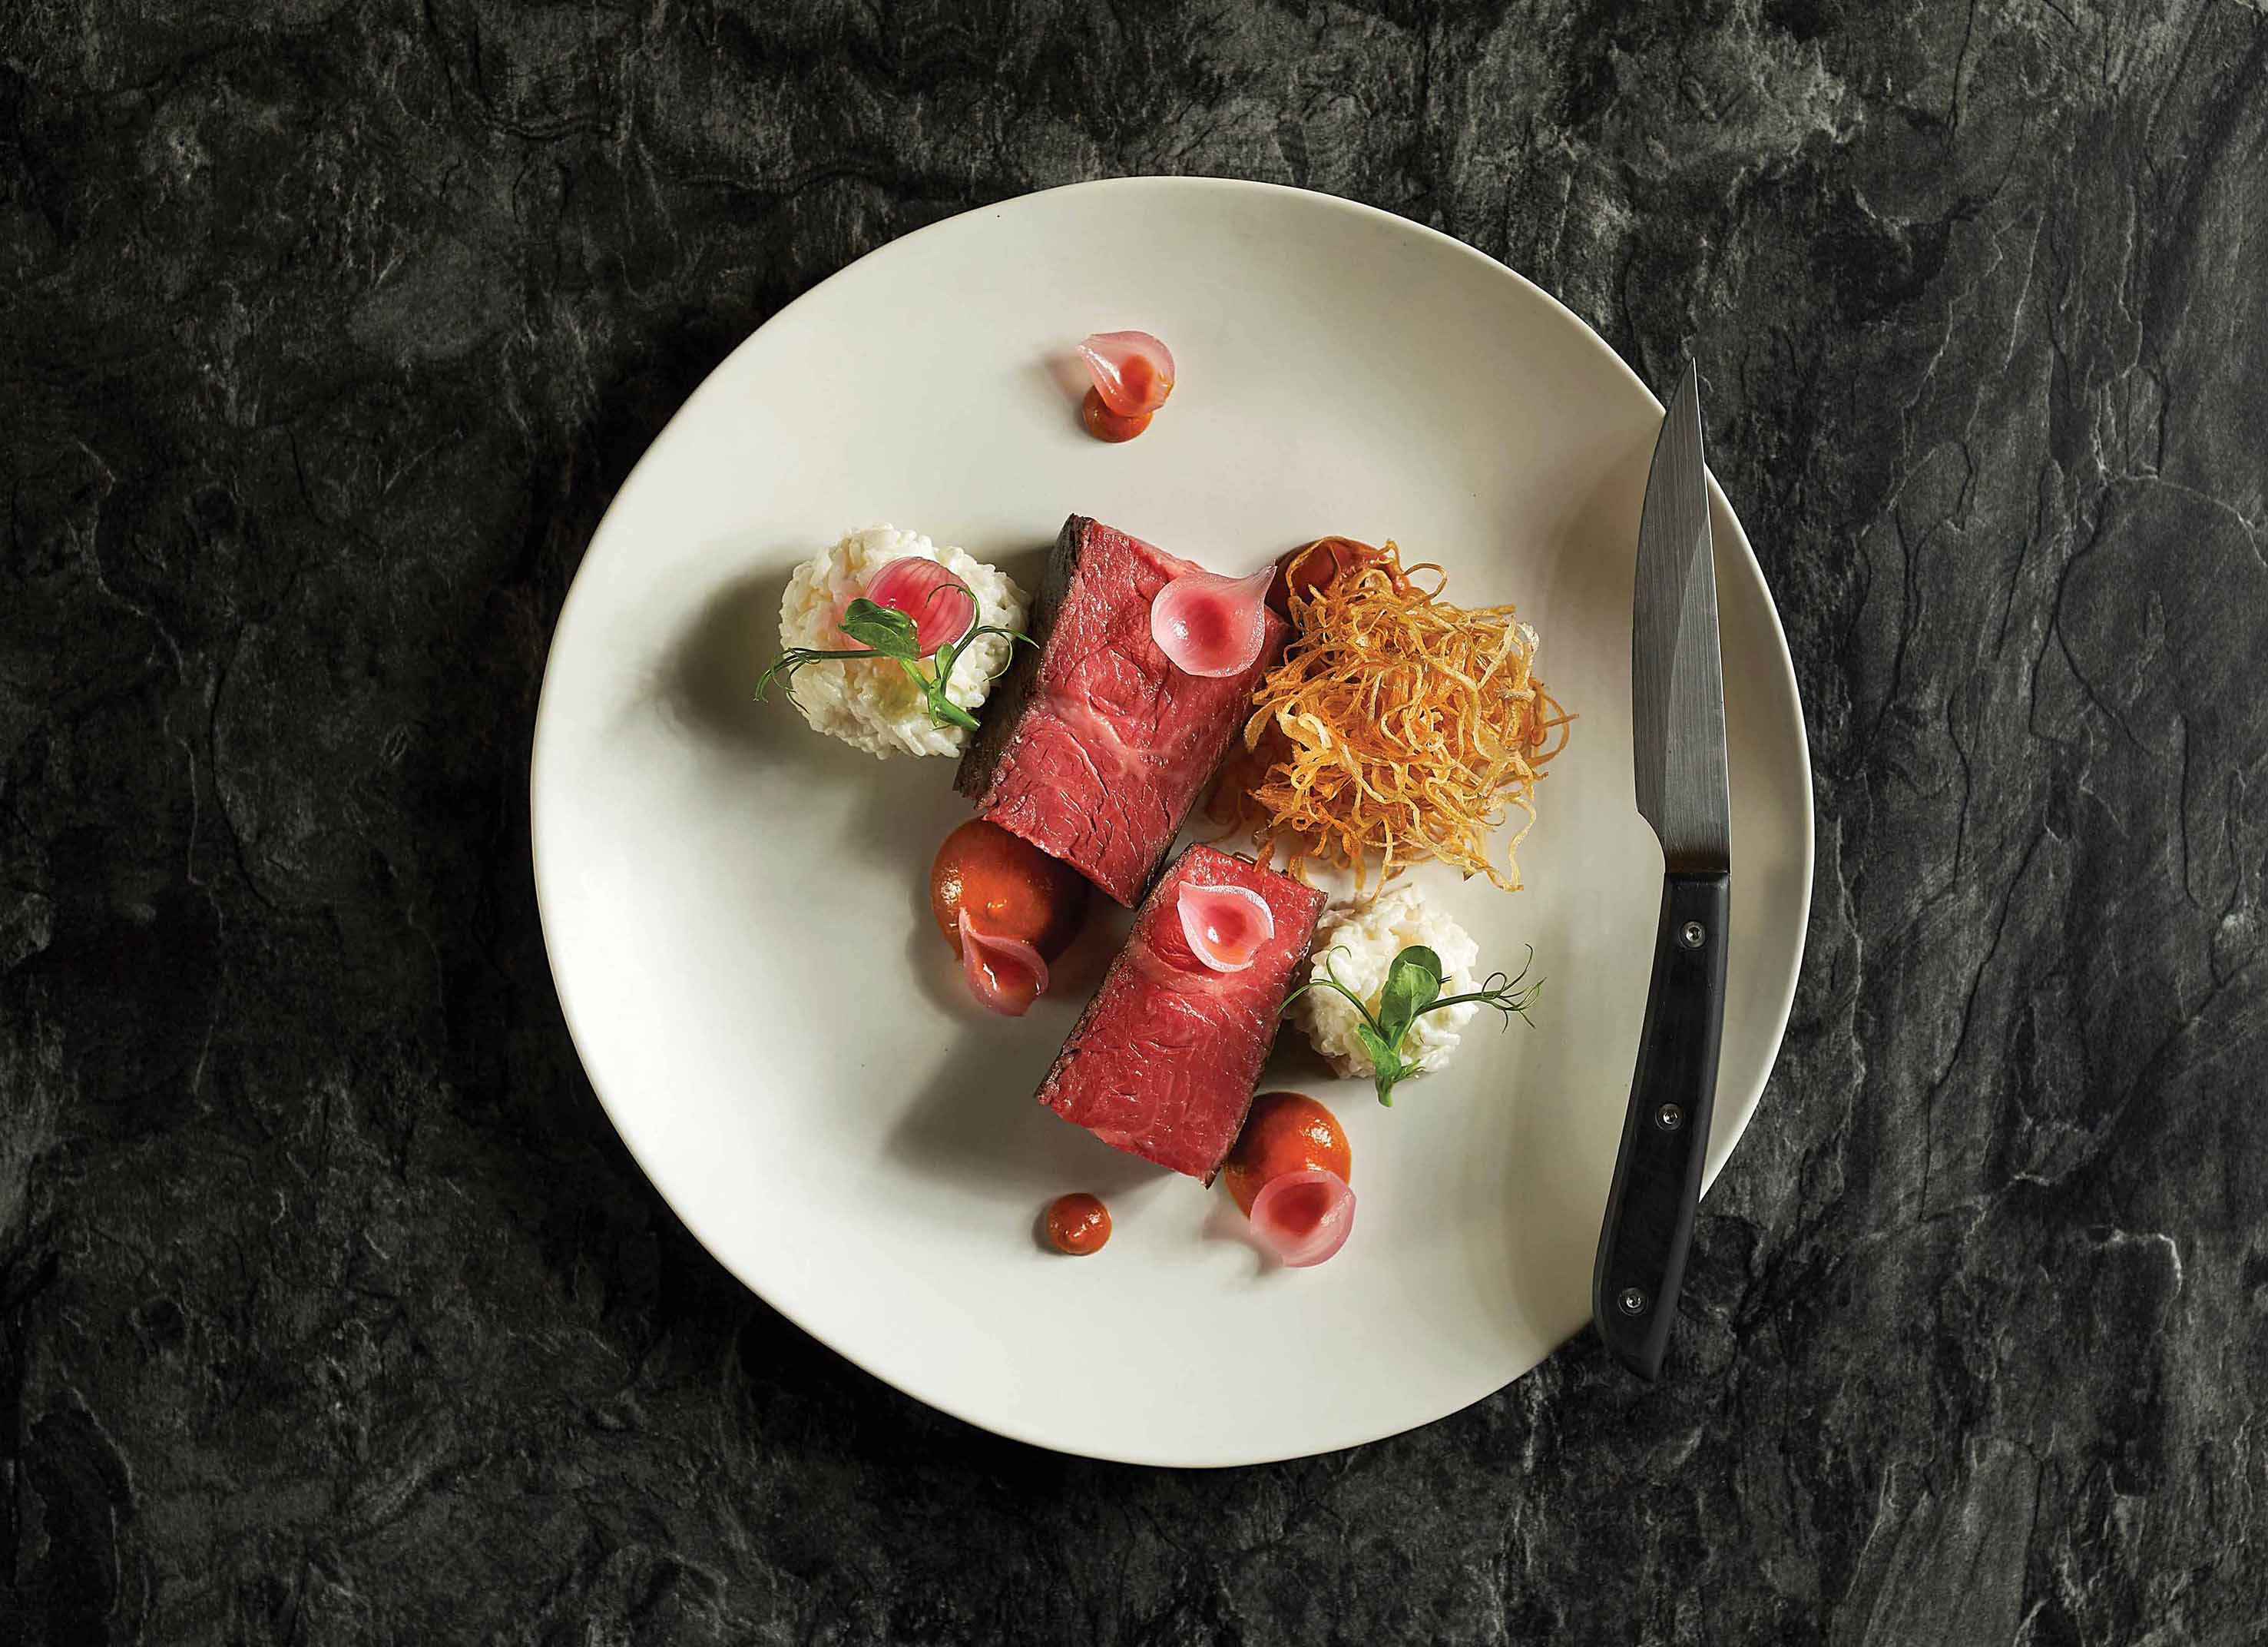 Elegant pairings of local flavours and world-class produce, such as the rendang Wagyu, are the highlights of the Dining Room menu at Straits Clan